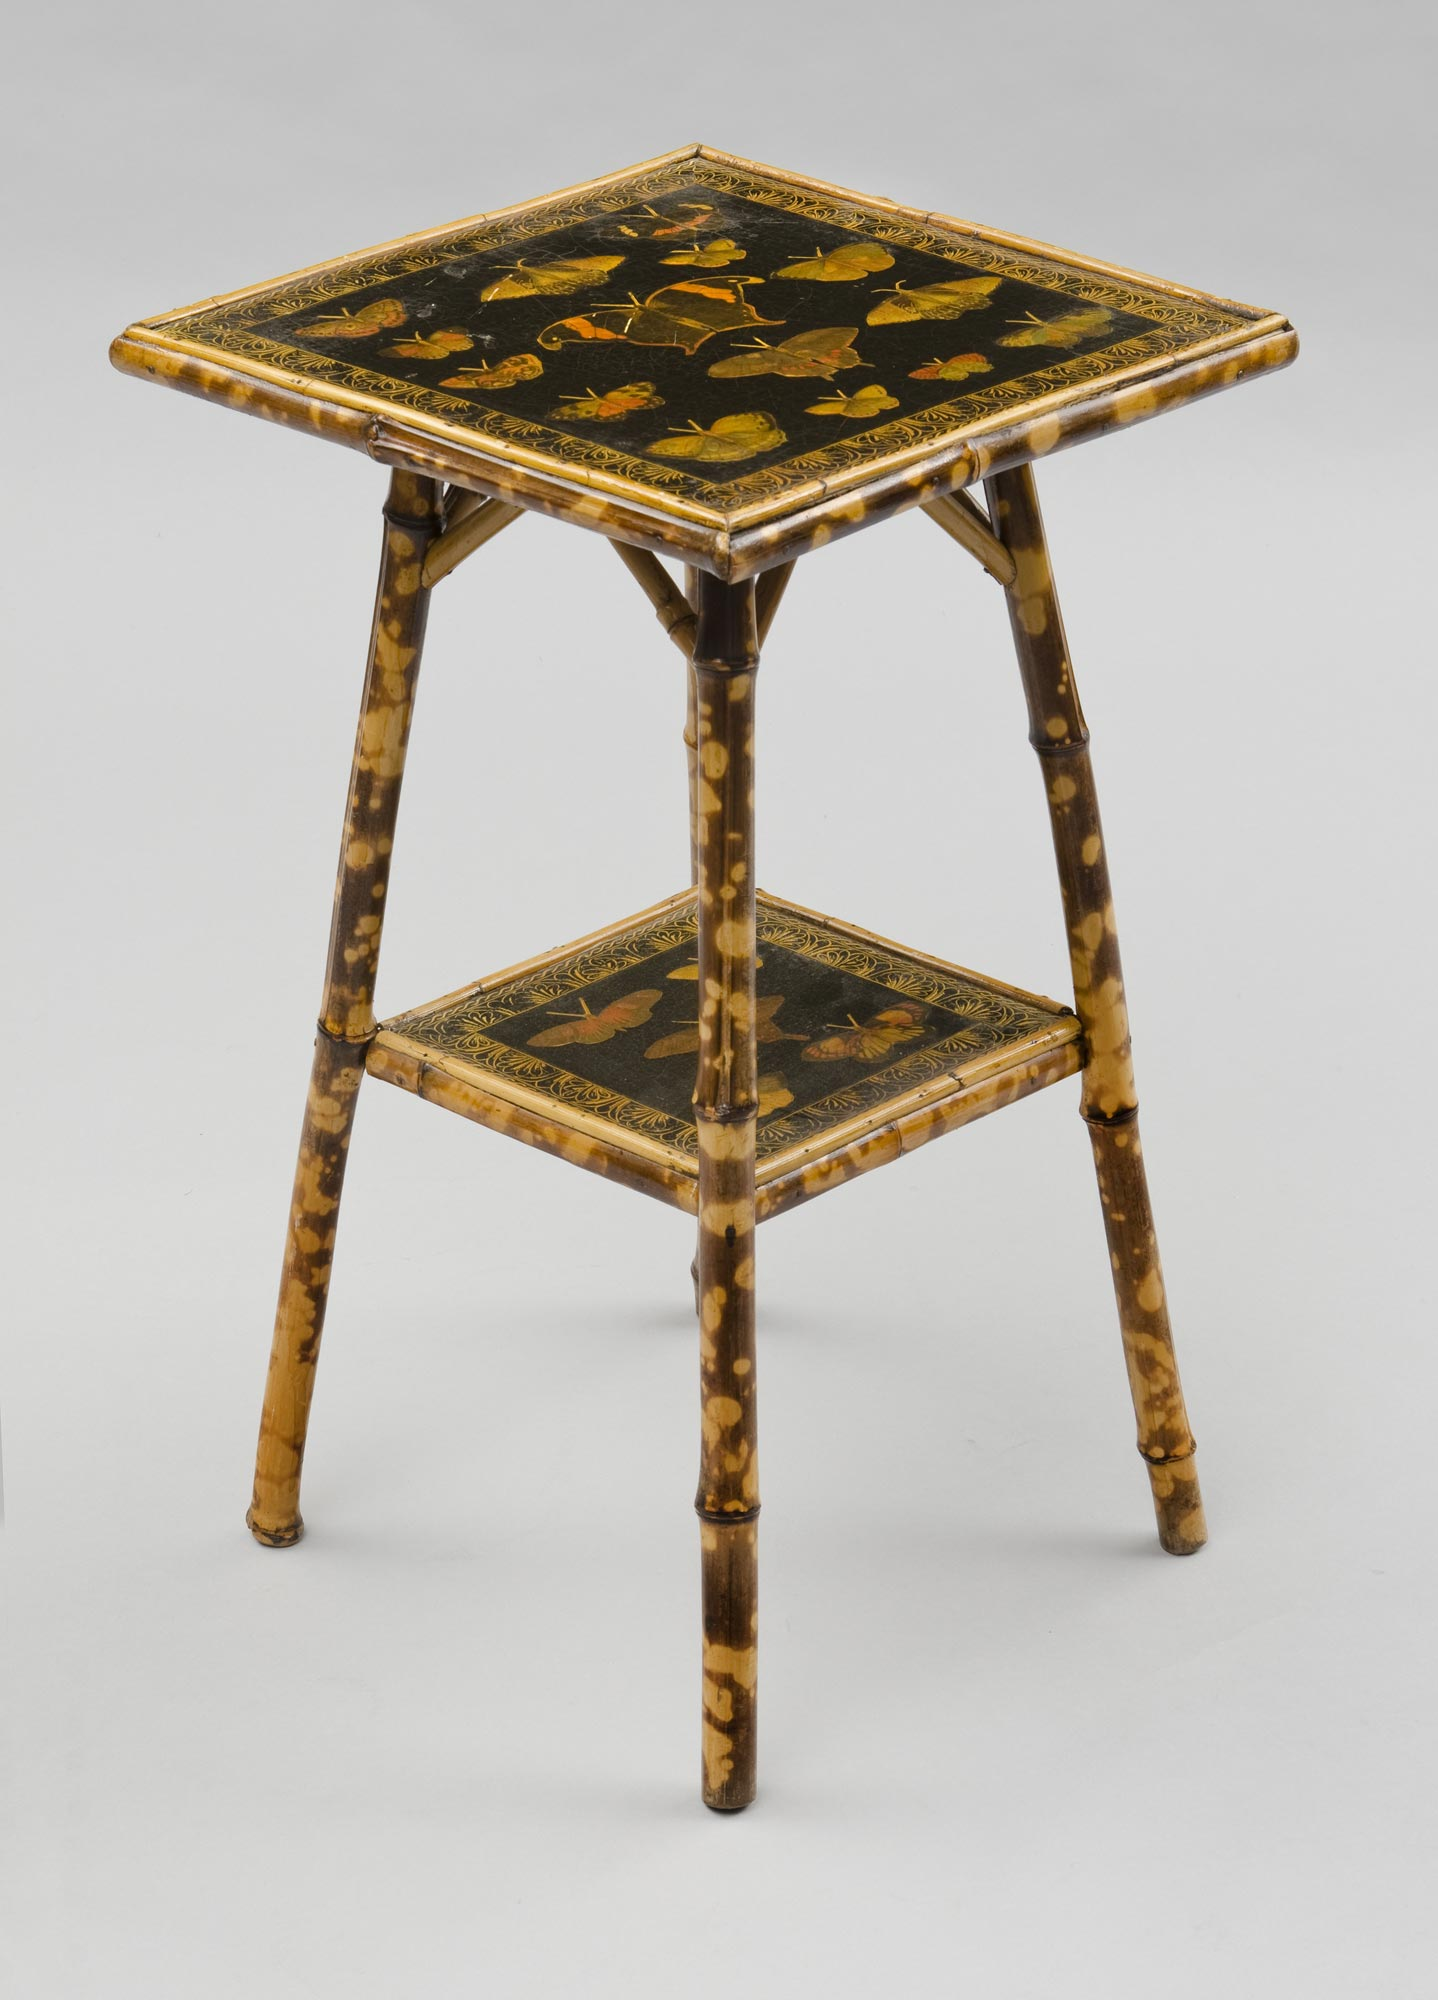 187 Product 187 Bamboo Table